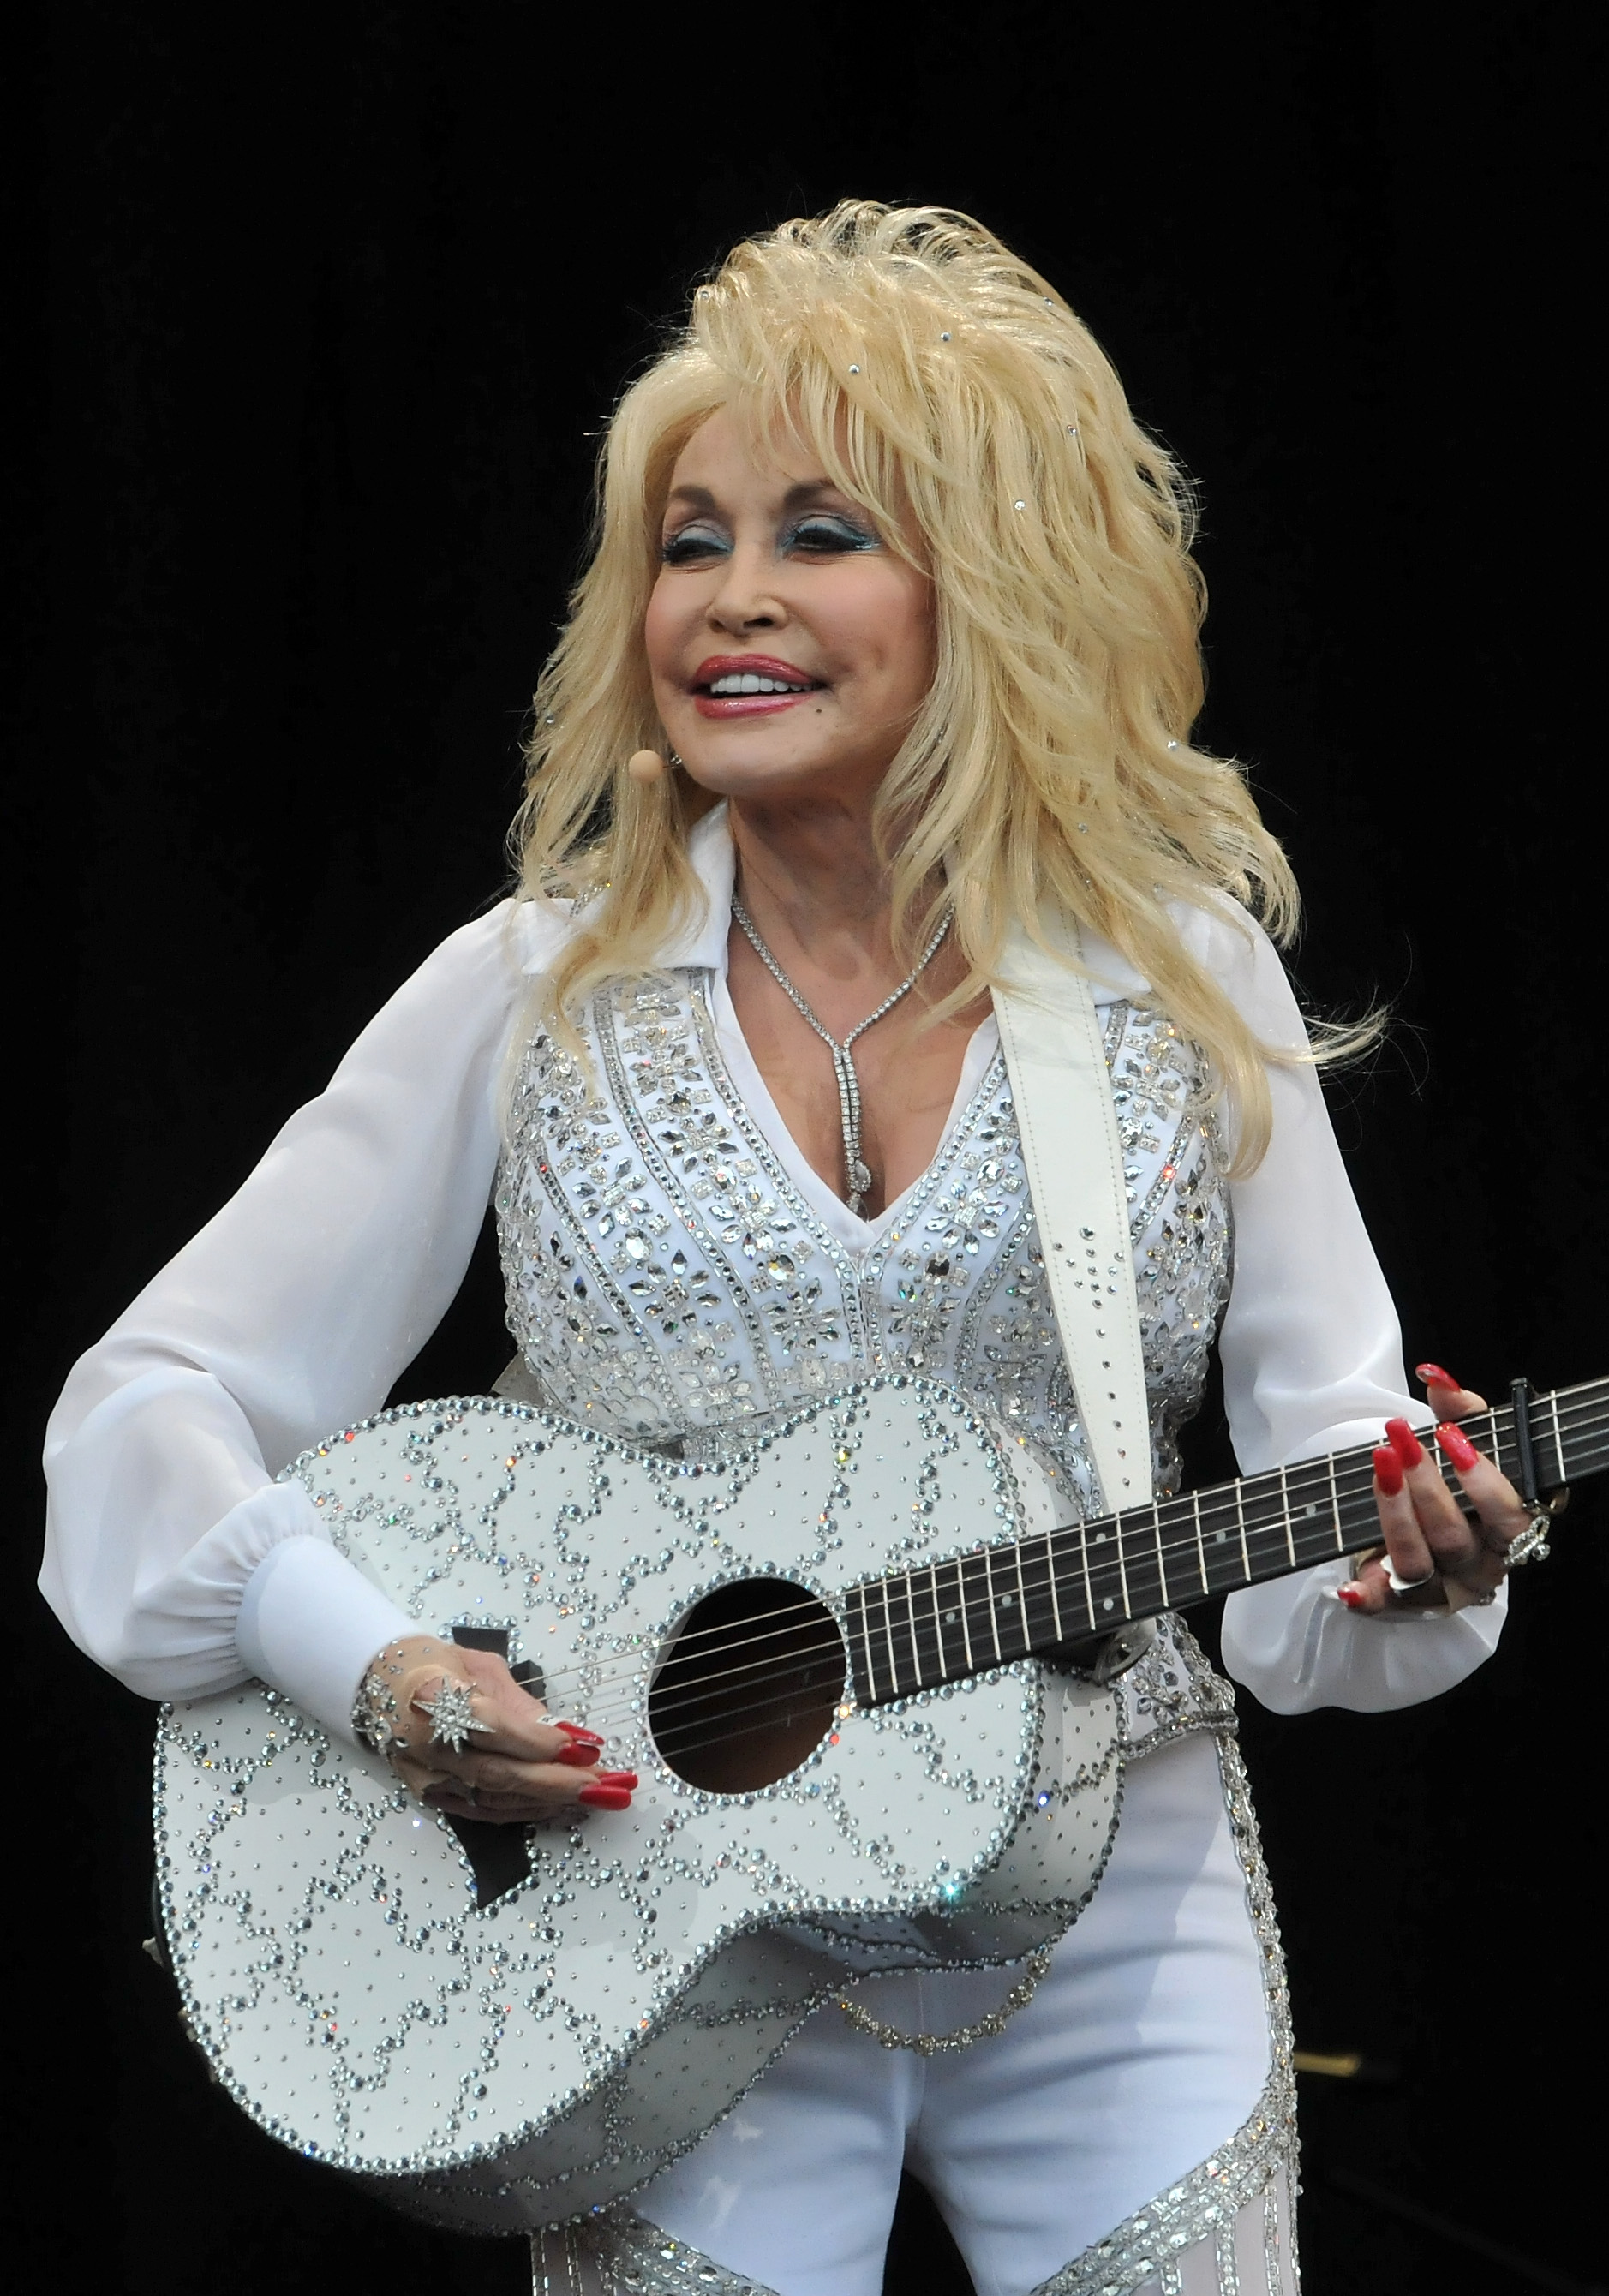 Dolly Parton performs  during the Glastonbury Festival on June 29, 2014 in Glastonbury, England.